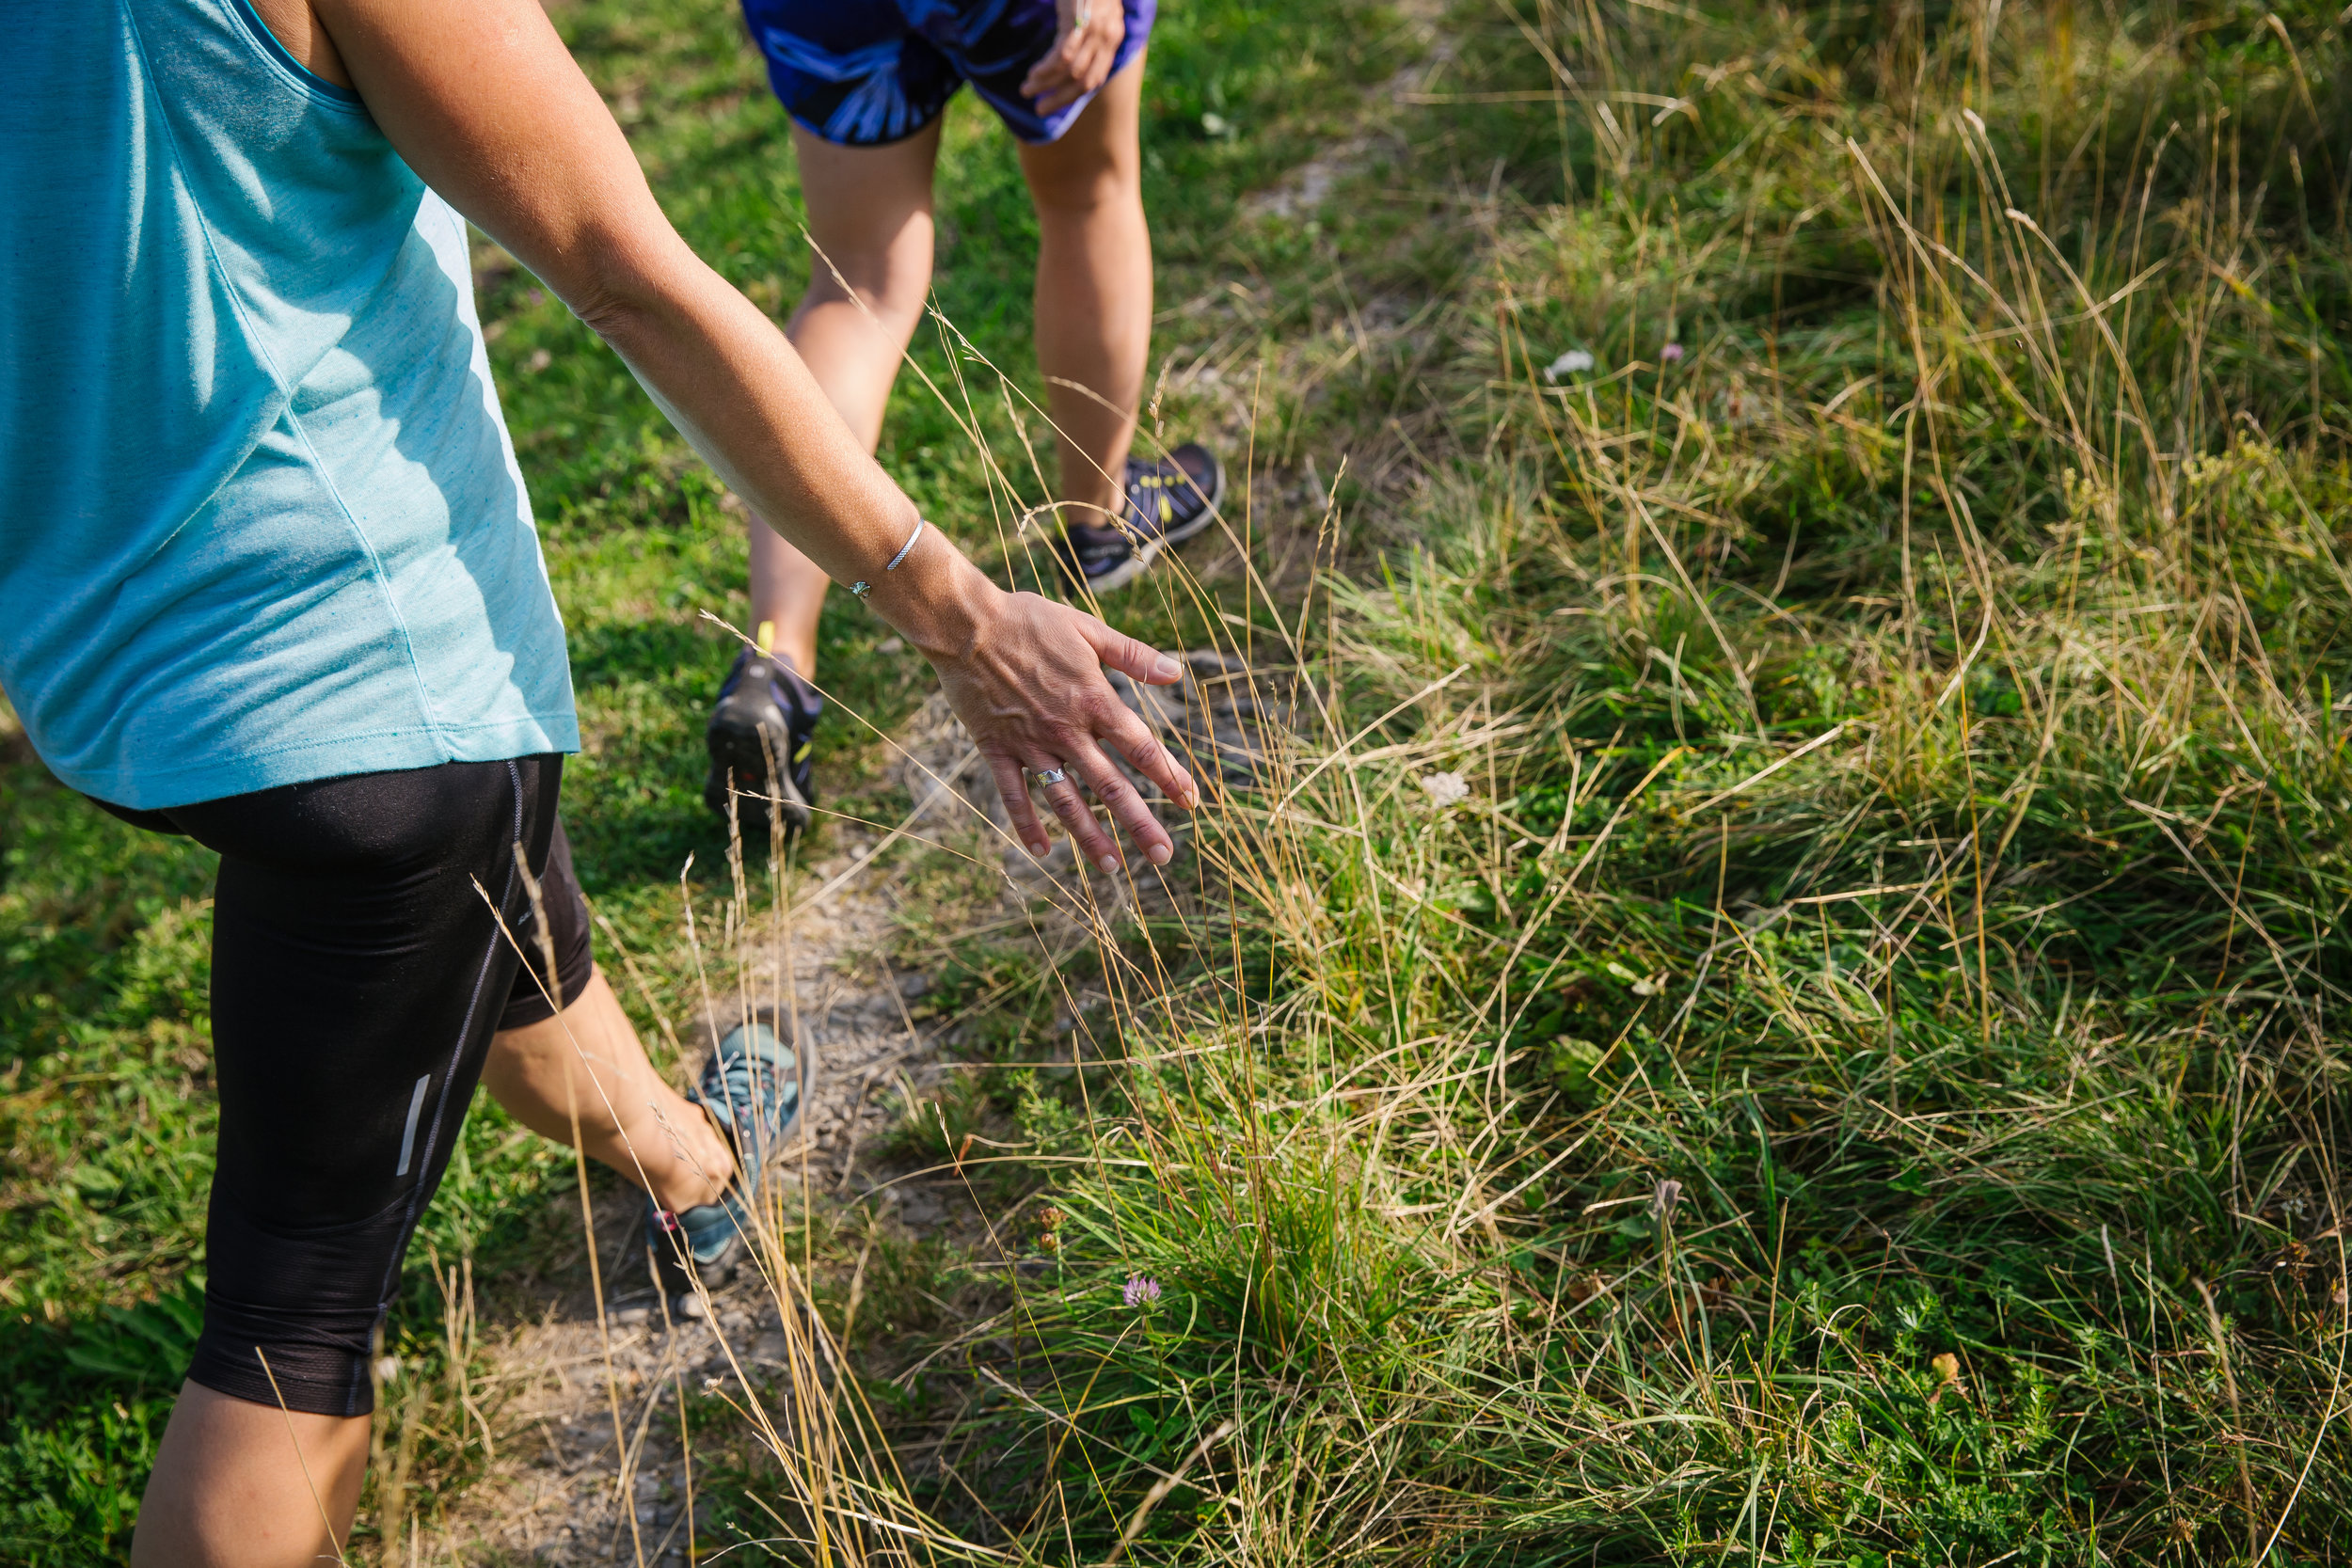 Salomon_hiking_Bluffy_aout2016_Vanessa-Andrieux-1620.jpg